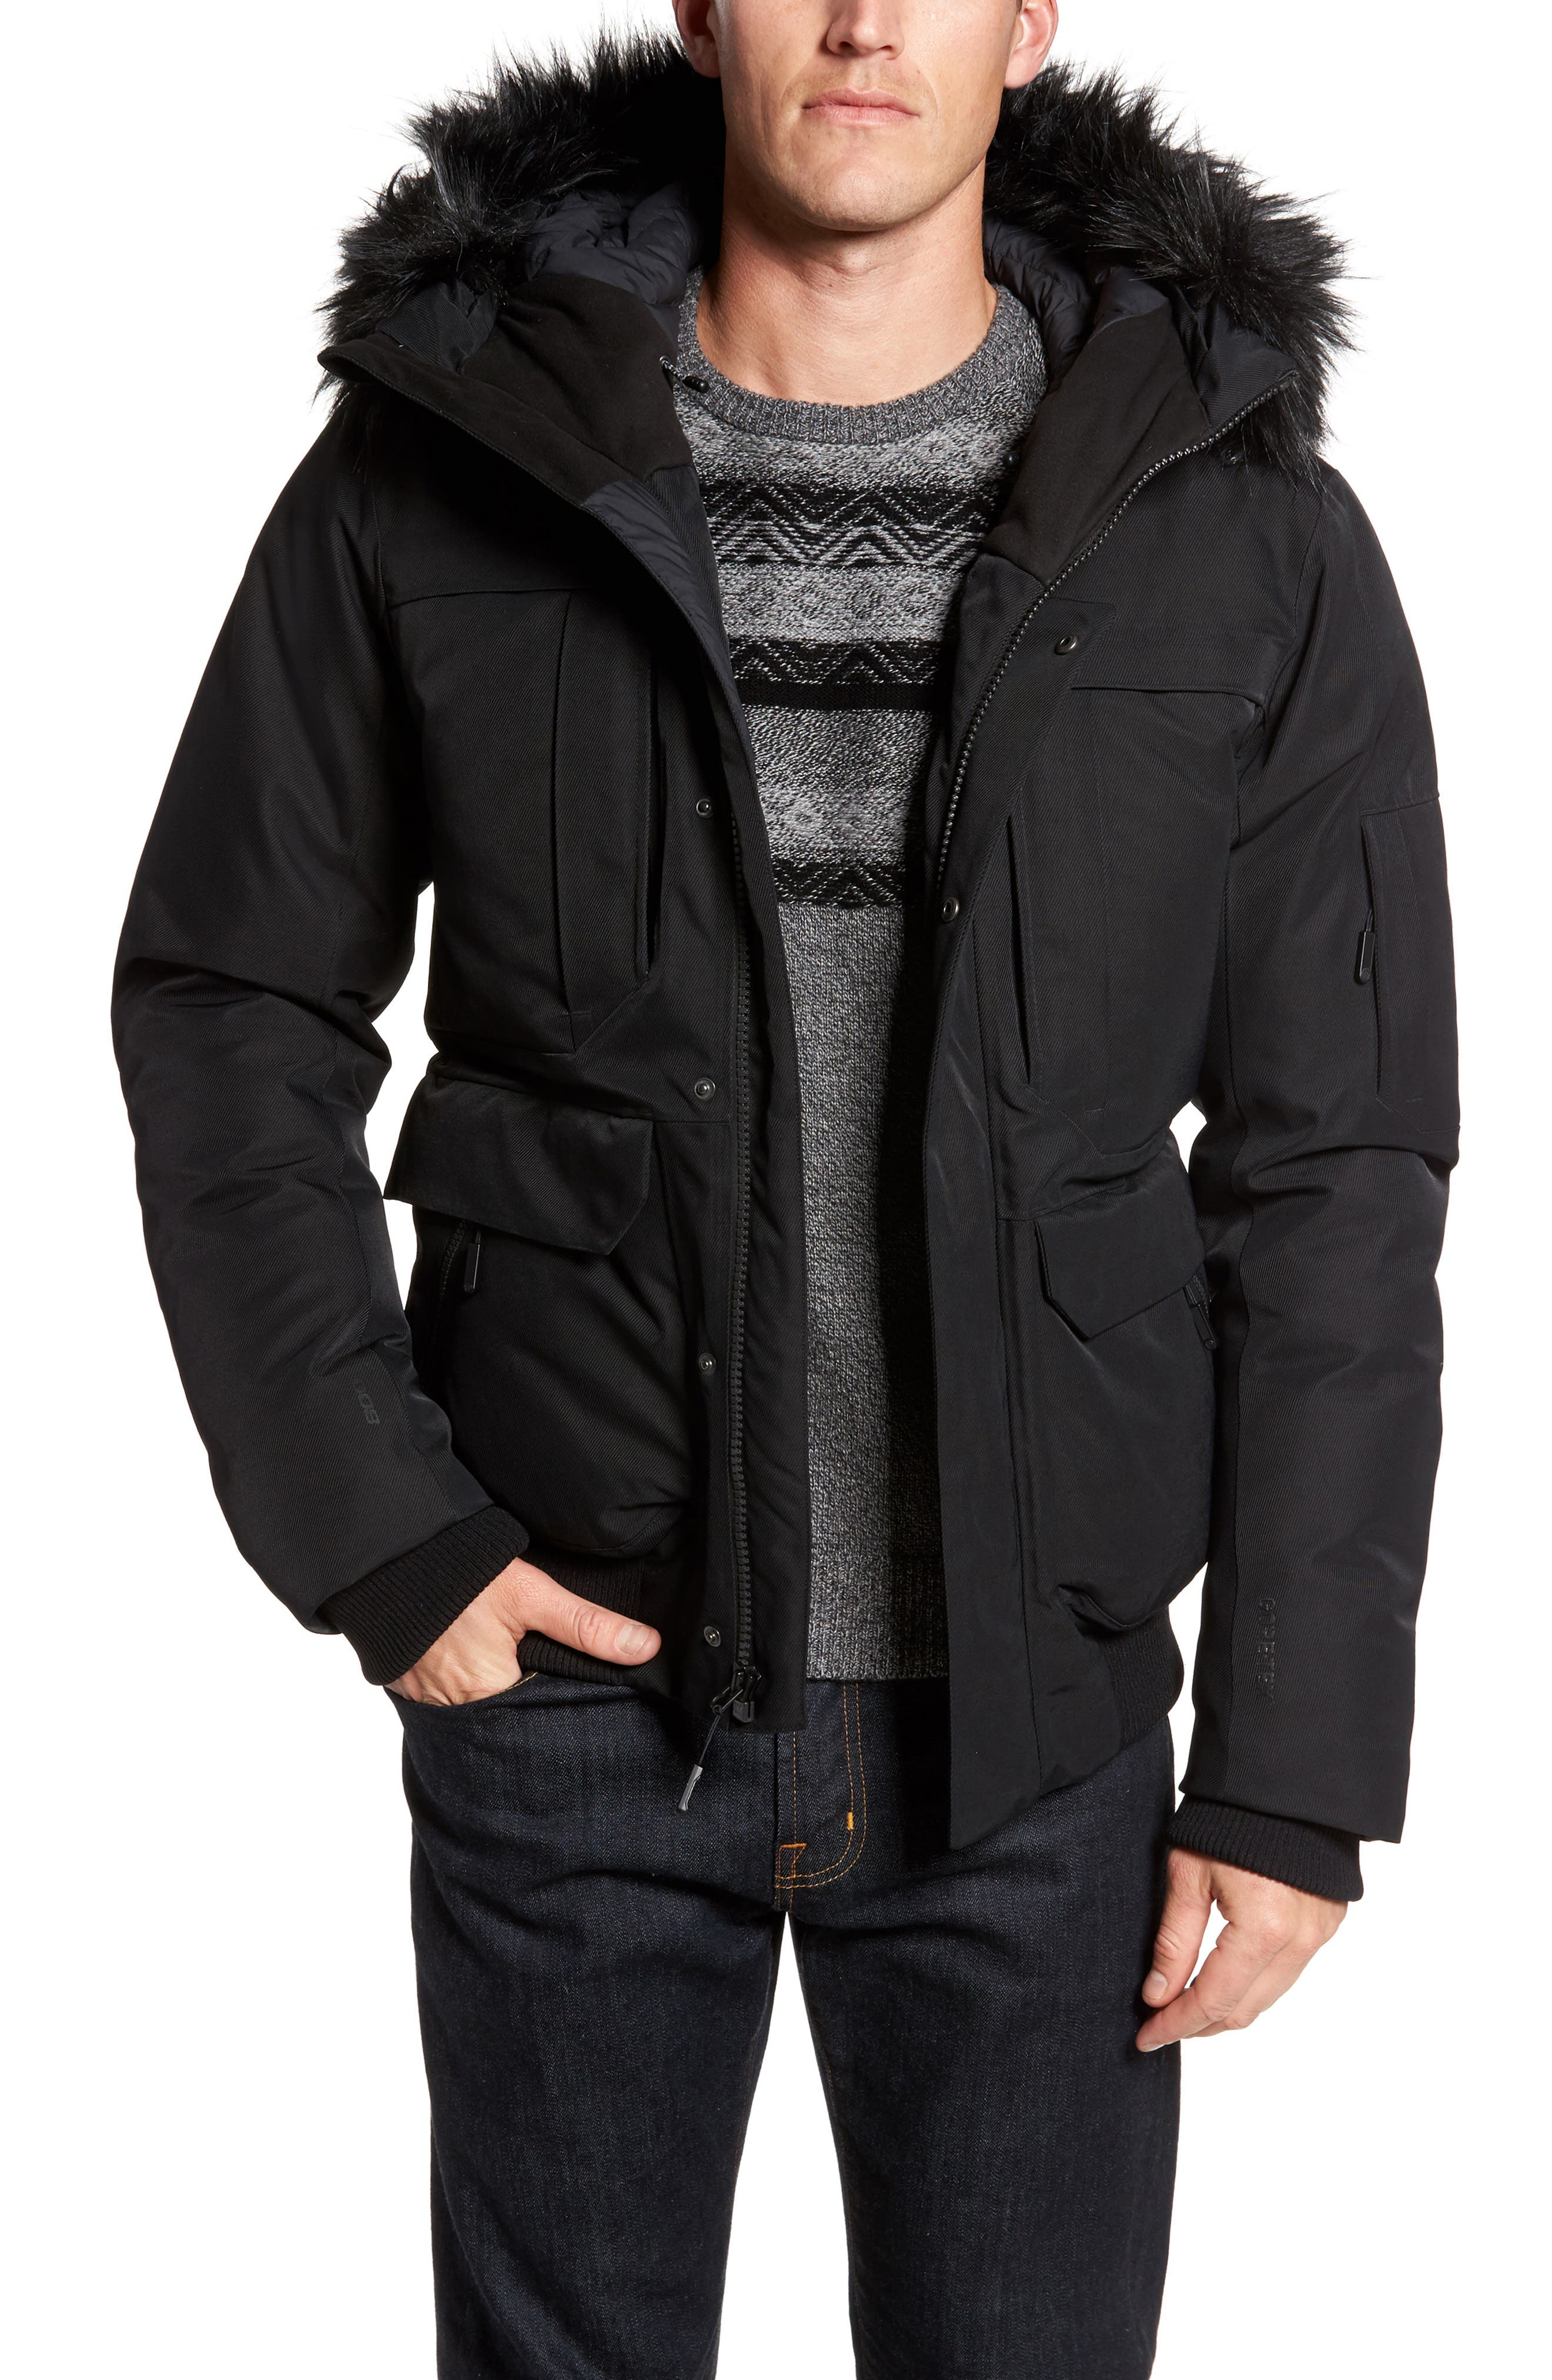 Cryos Expedition Gore-Tex<sup>®</sup> Bomber Jacket,                         Main,                         color,